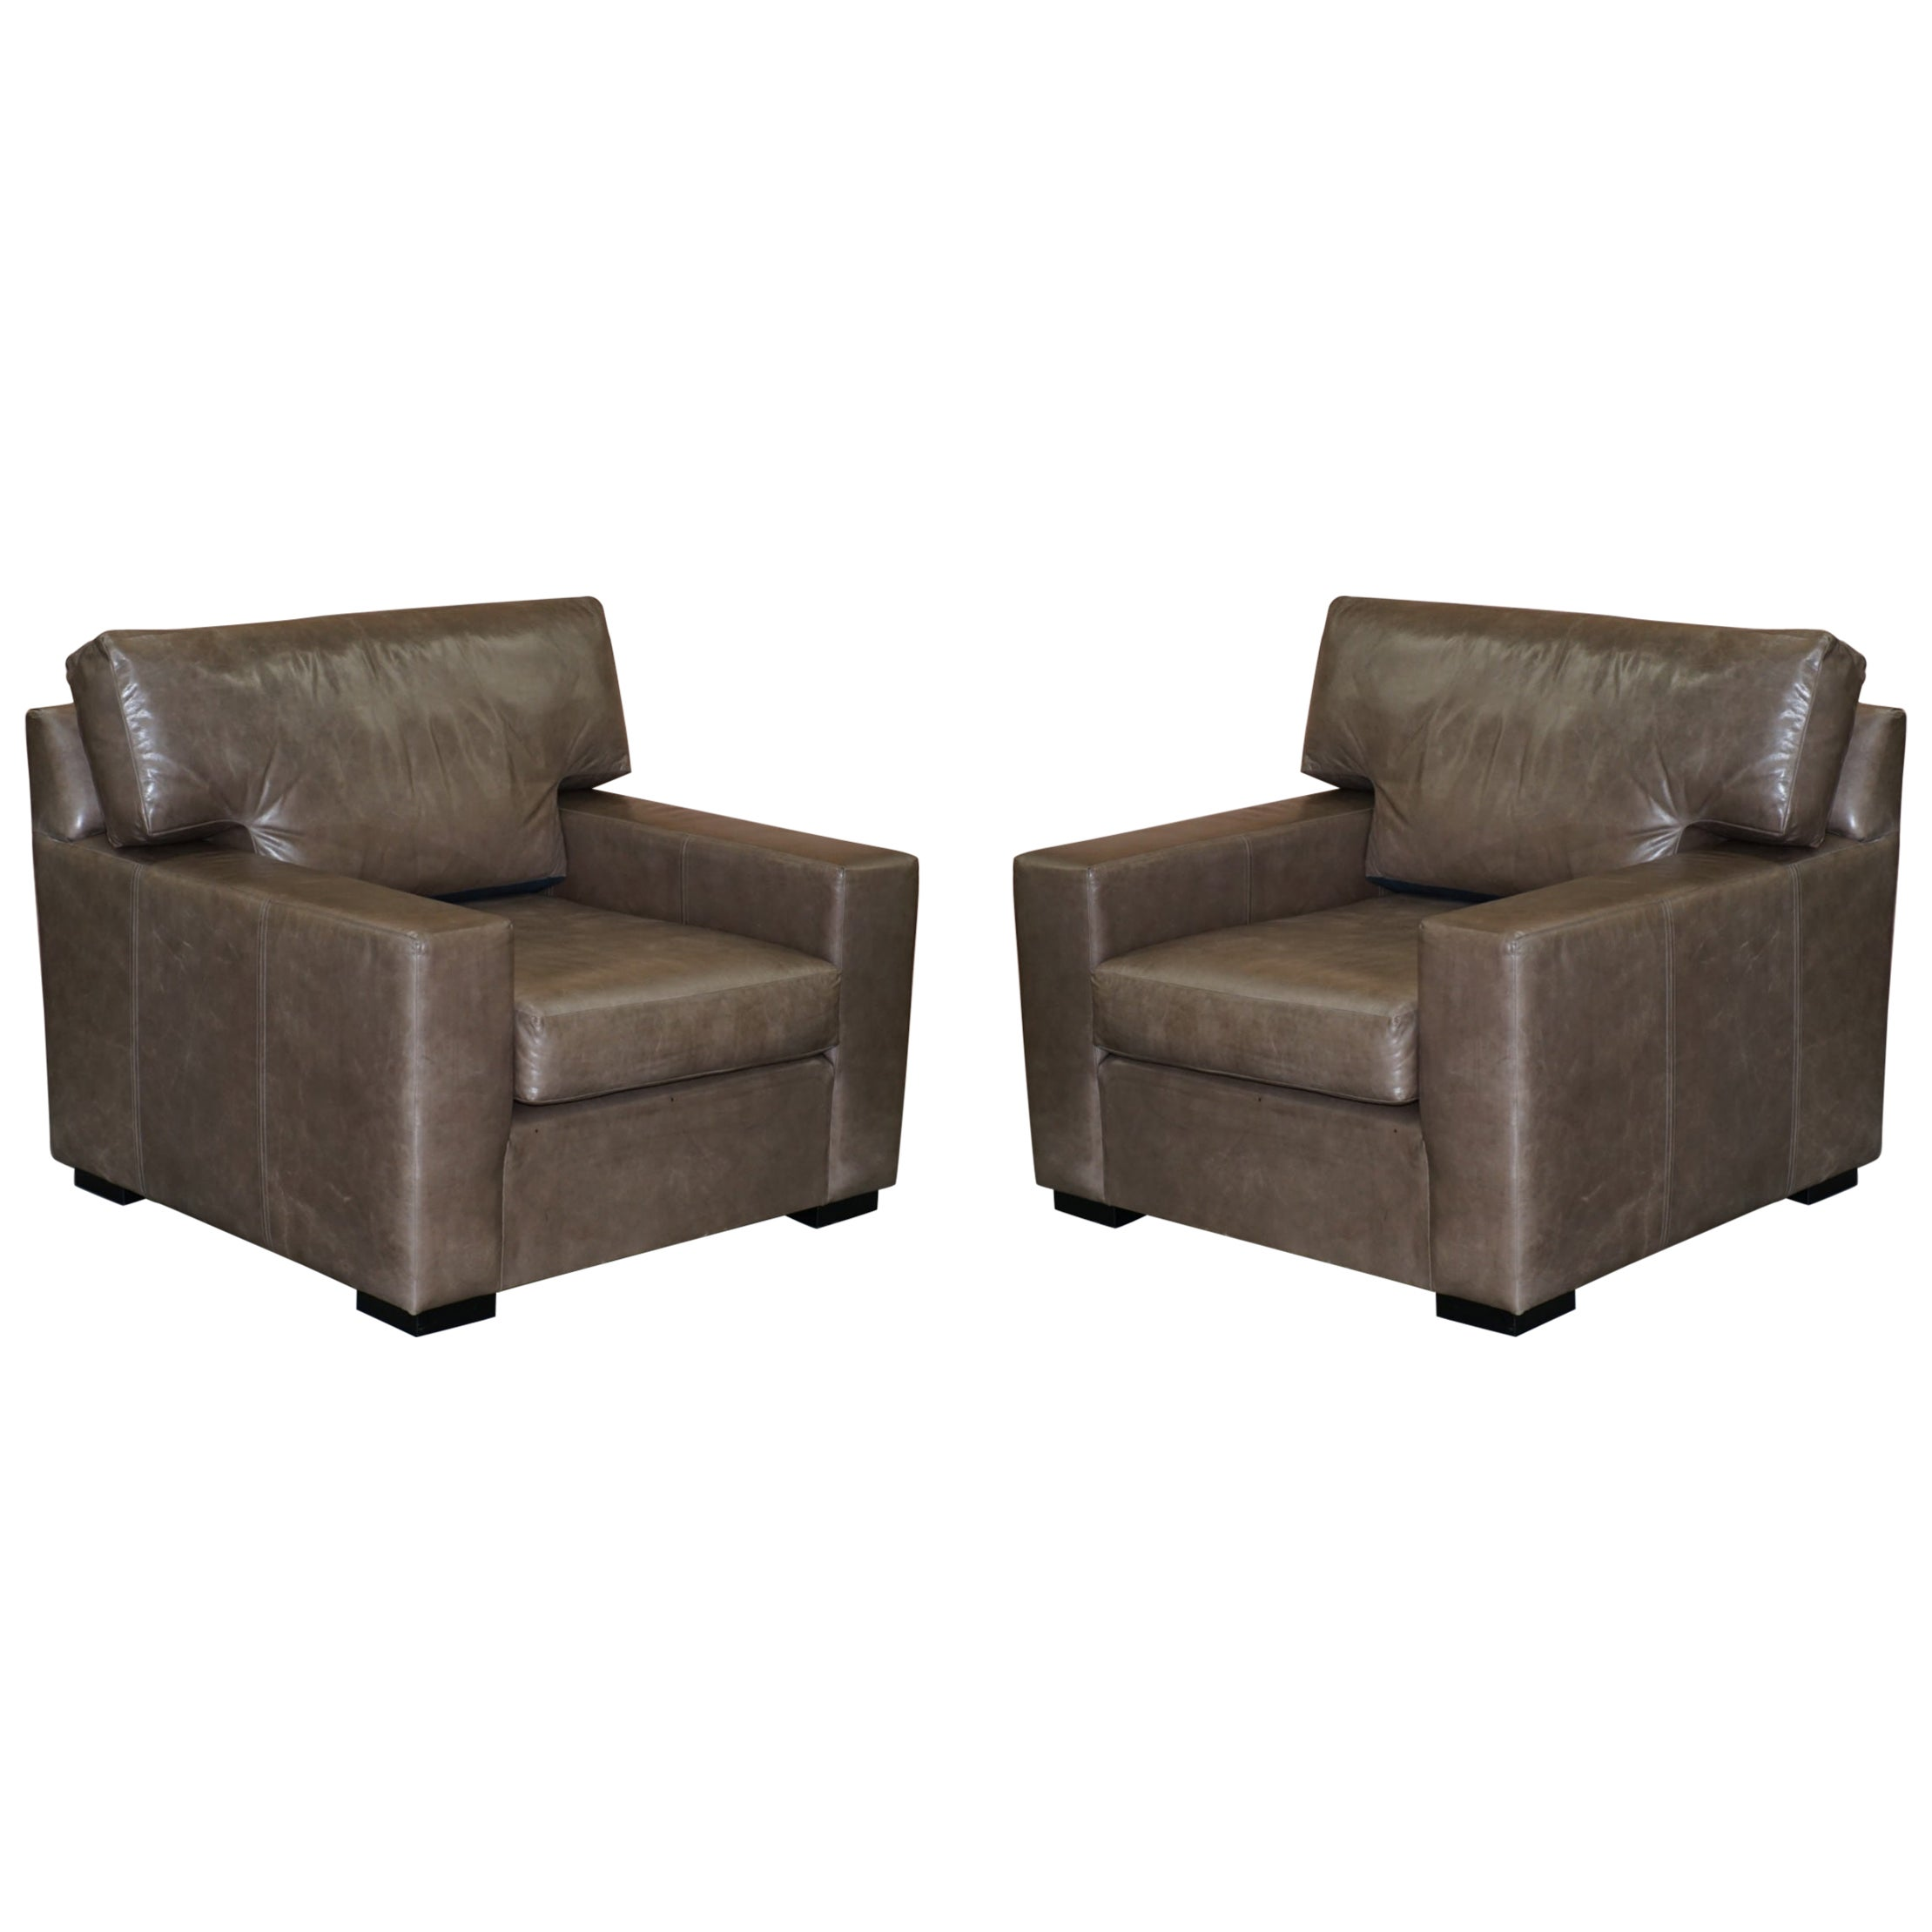 Luxury Pair of Very Large Designer Grey Leather Armchairs or Love Seats